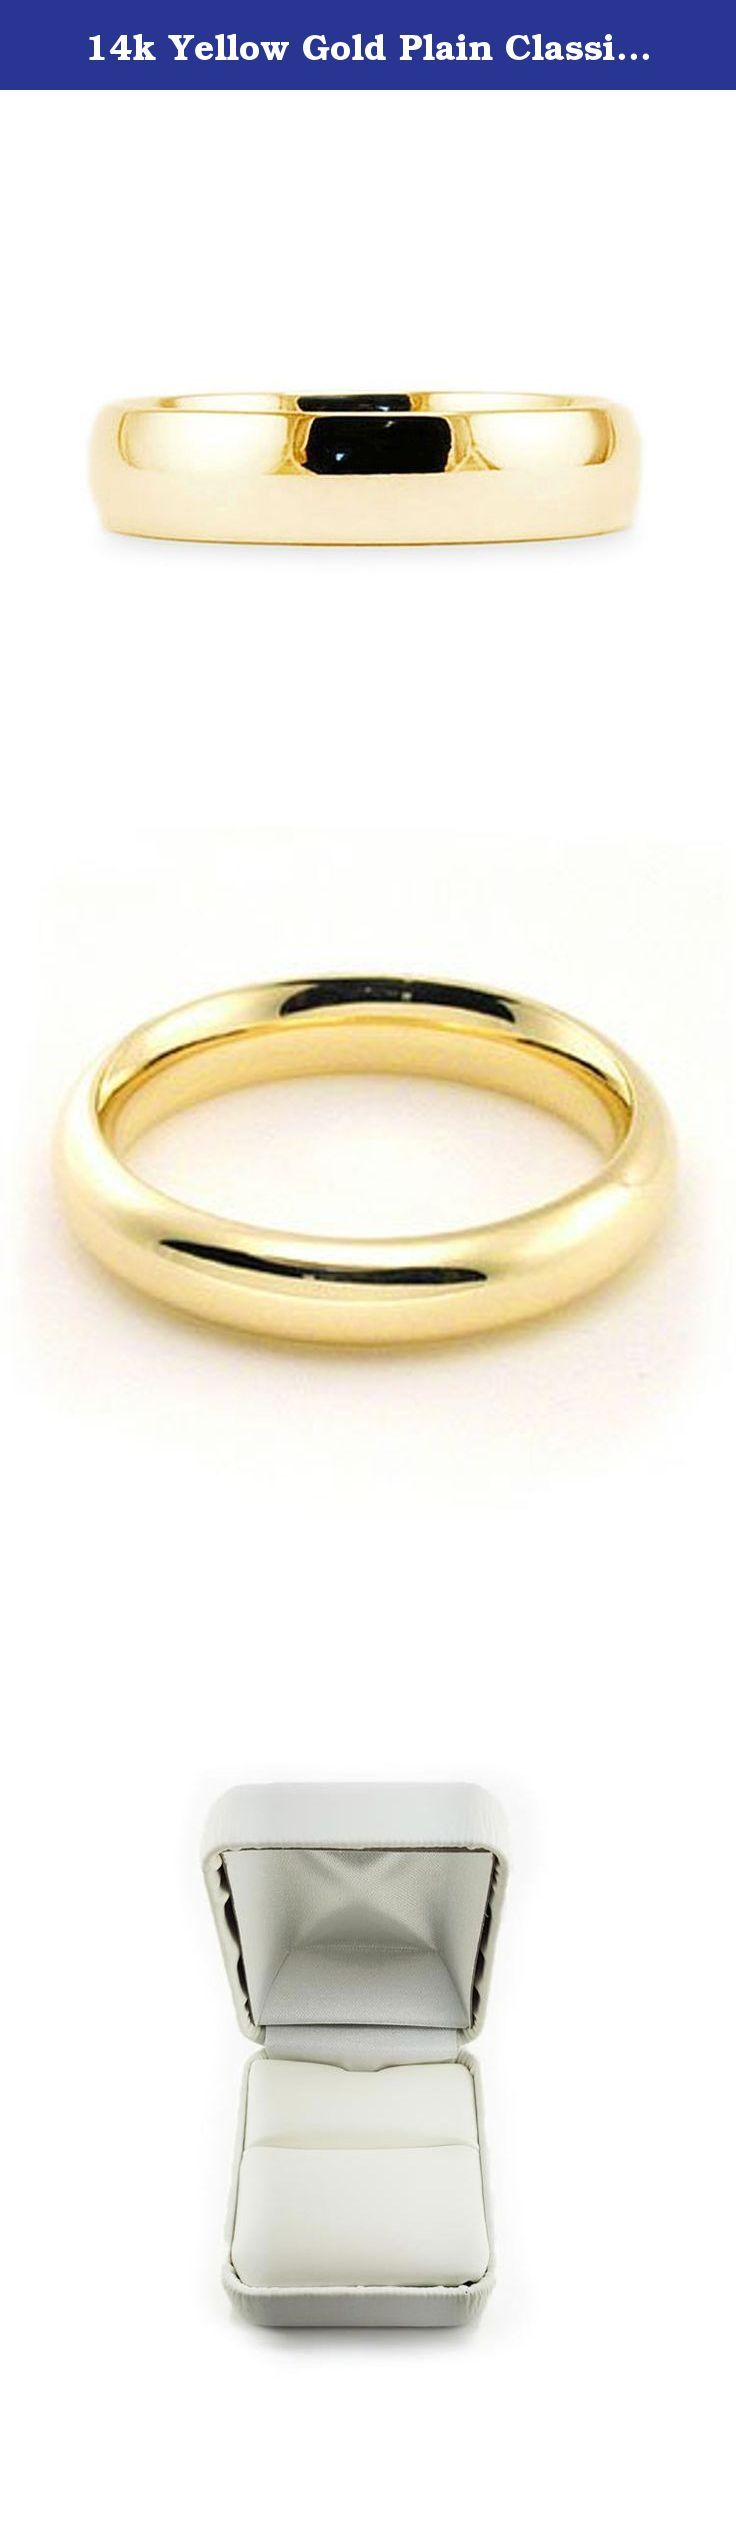 14k Yellow Gold Plain Classic 4mm COMFORT FIT WEDDING BAND size 6.75. This beautiful classic band has a slightly rounded body, bright finish and is comfort fit. The comfort fit design features a rounded polished interior that allows the ring to slide easily and rest comfortably on the finger. Caring For Your Jewelry To keep your jewelry shining and scratch-free, avoid contact with harsh chemicals and chlorine. To clean gold jewelry, use warm water and a mild soap. We do not suggest using…